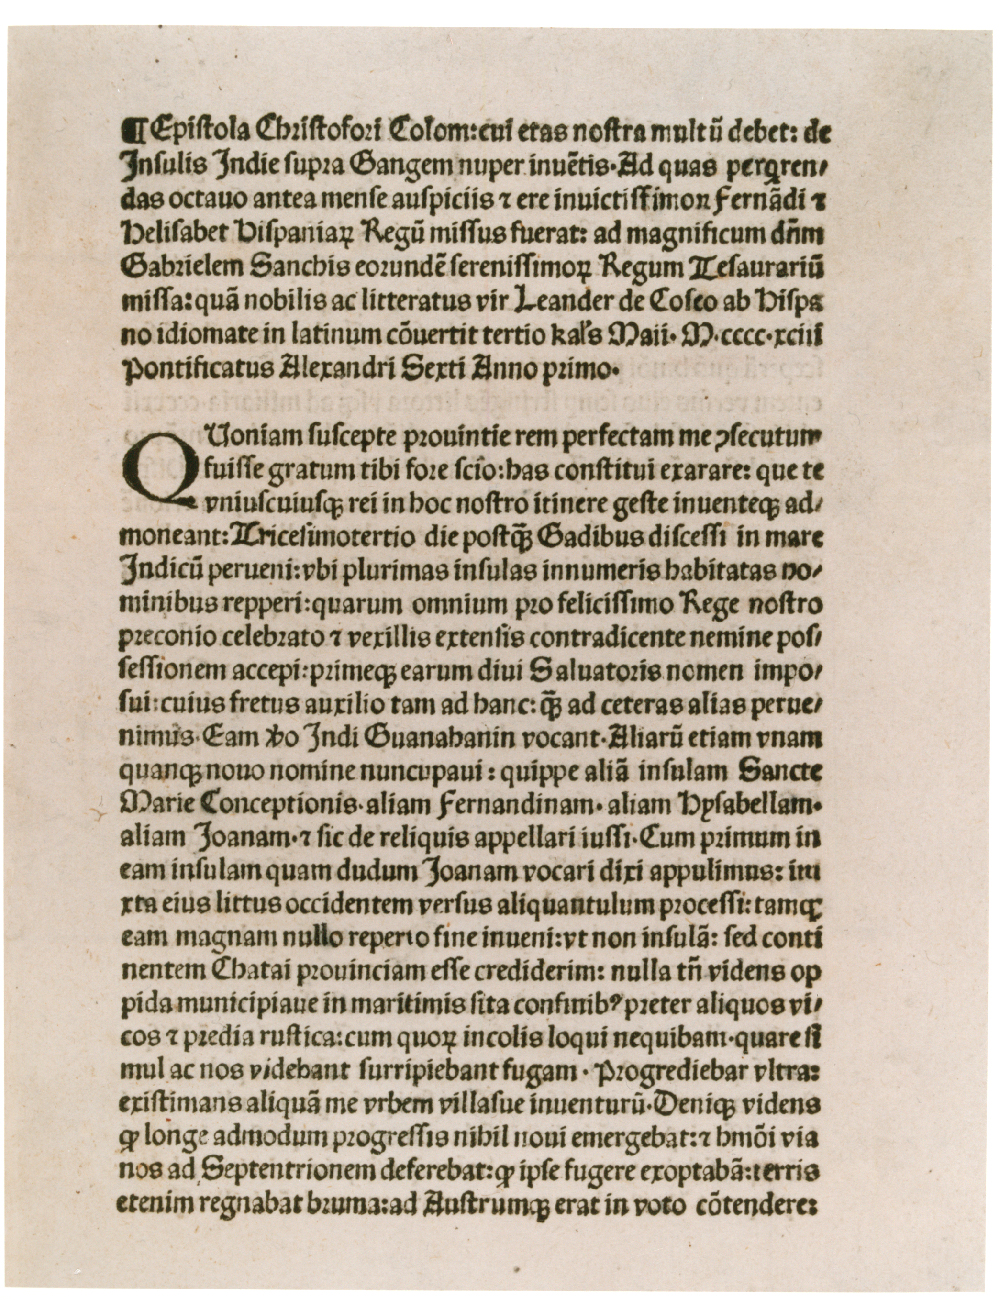 Columbus's letter printed in Latin in Rome, April 1493. (GLC01427)